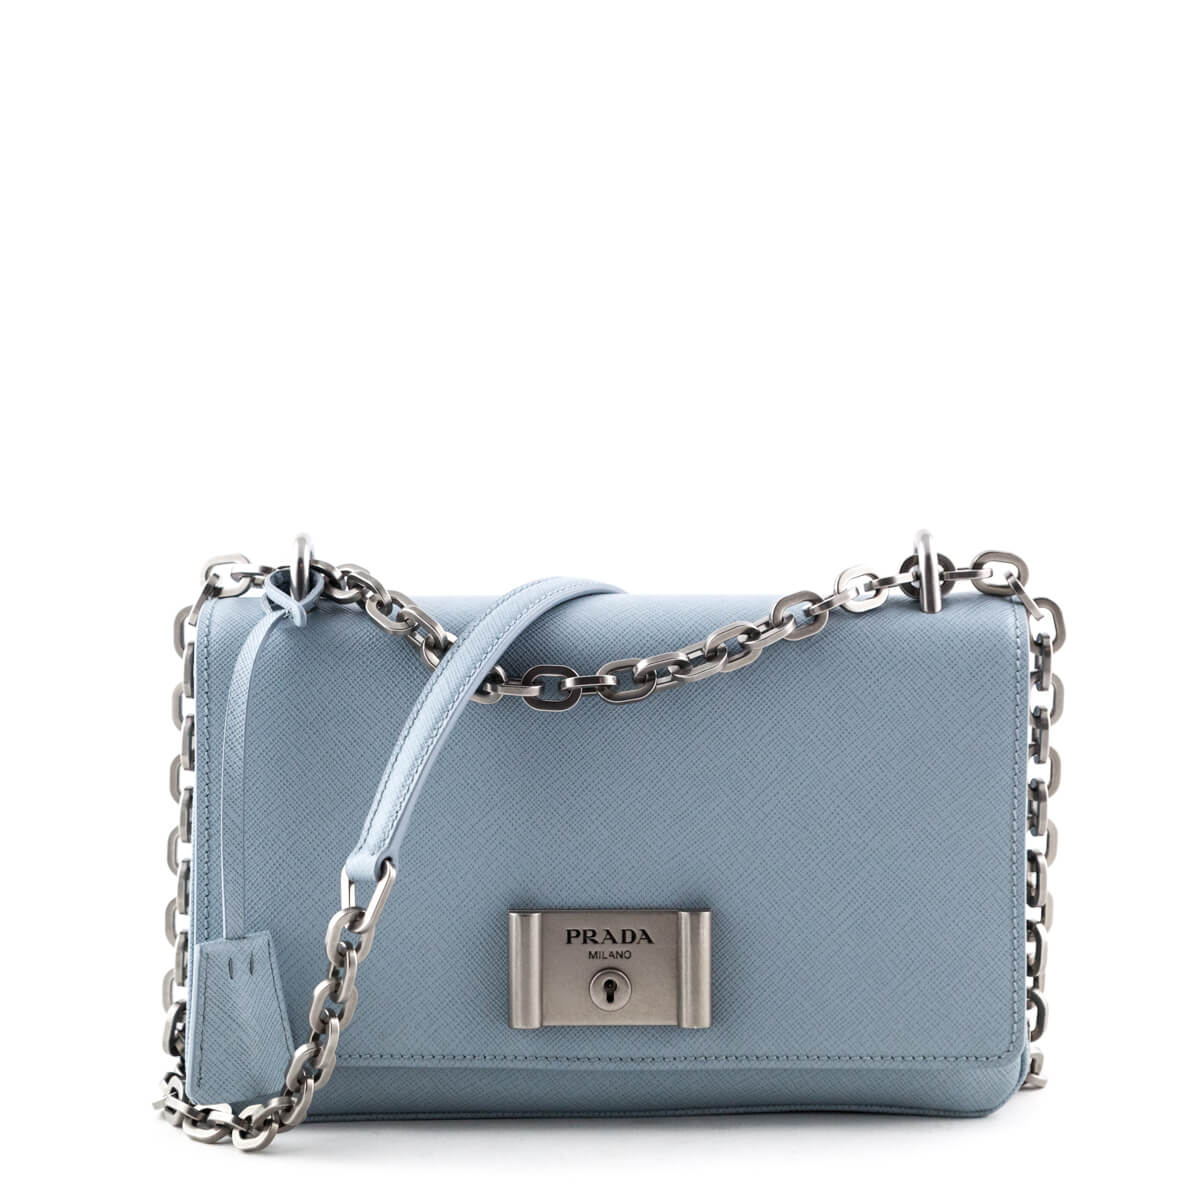 49e01cdfb2 Prada Light Blue Saffiano Lux Chain Shoulder Bag - LOVE that BAG - Preowned  Authentic Designer ...